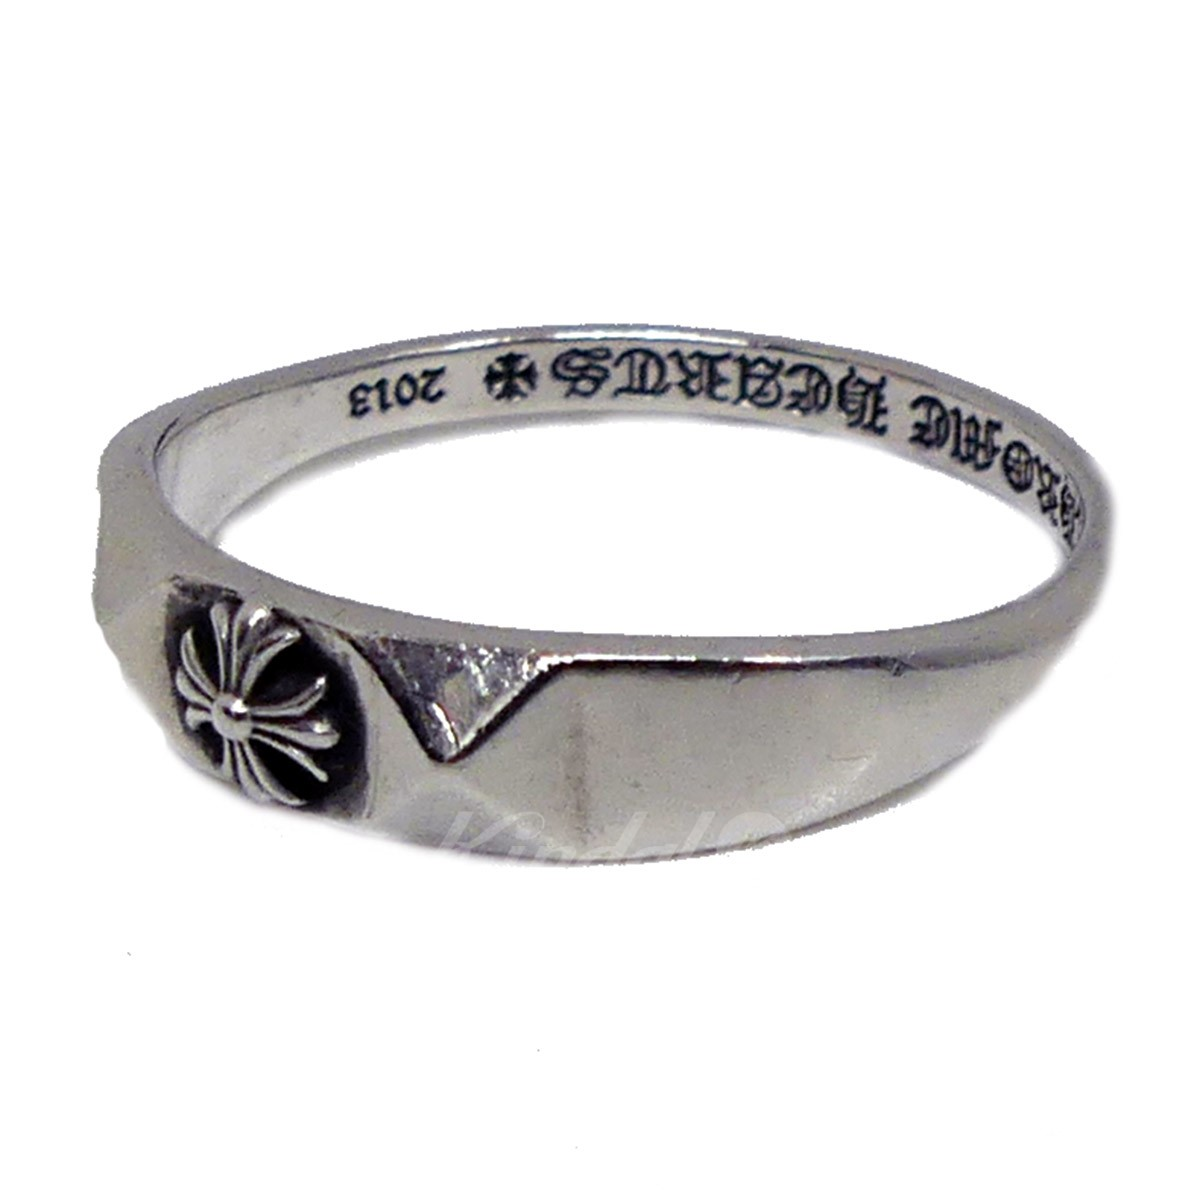 【中古】CHROME HEARTS BBBLGM PYRAMID SILVER925 リング 【送料無料】 【152140】 【KIND1550】